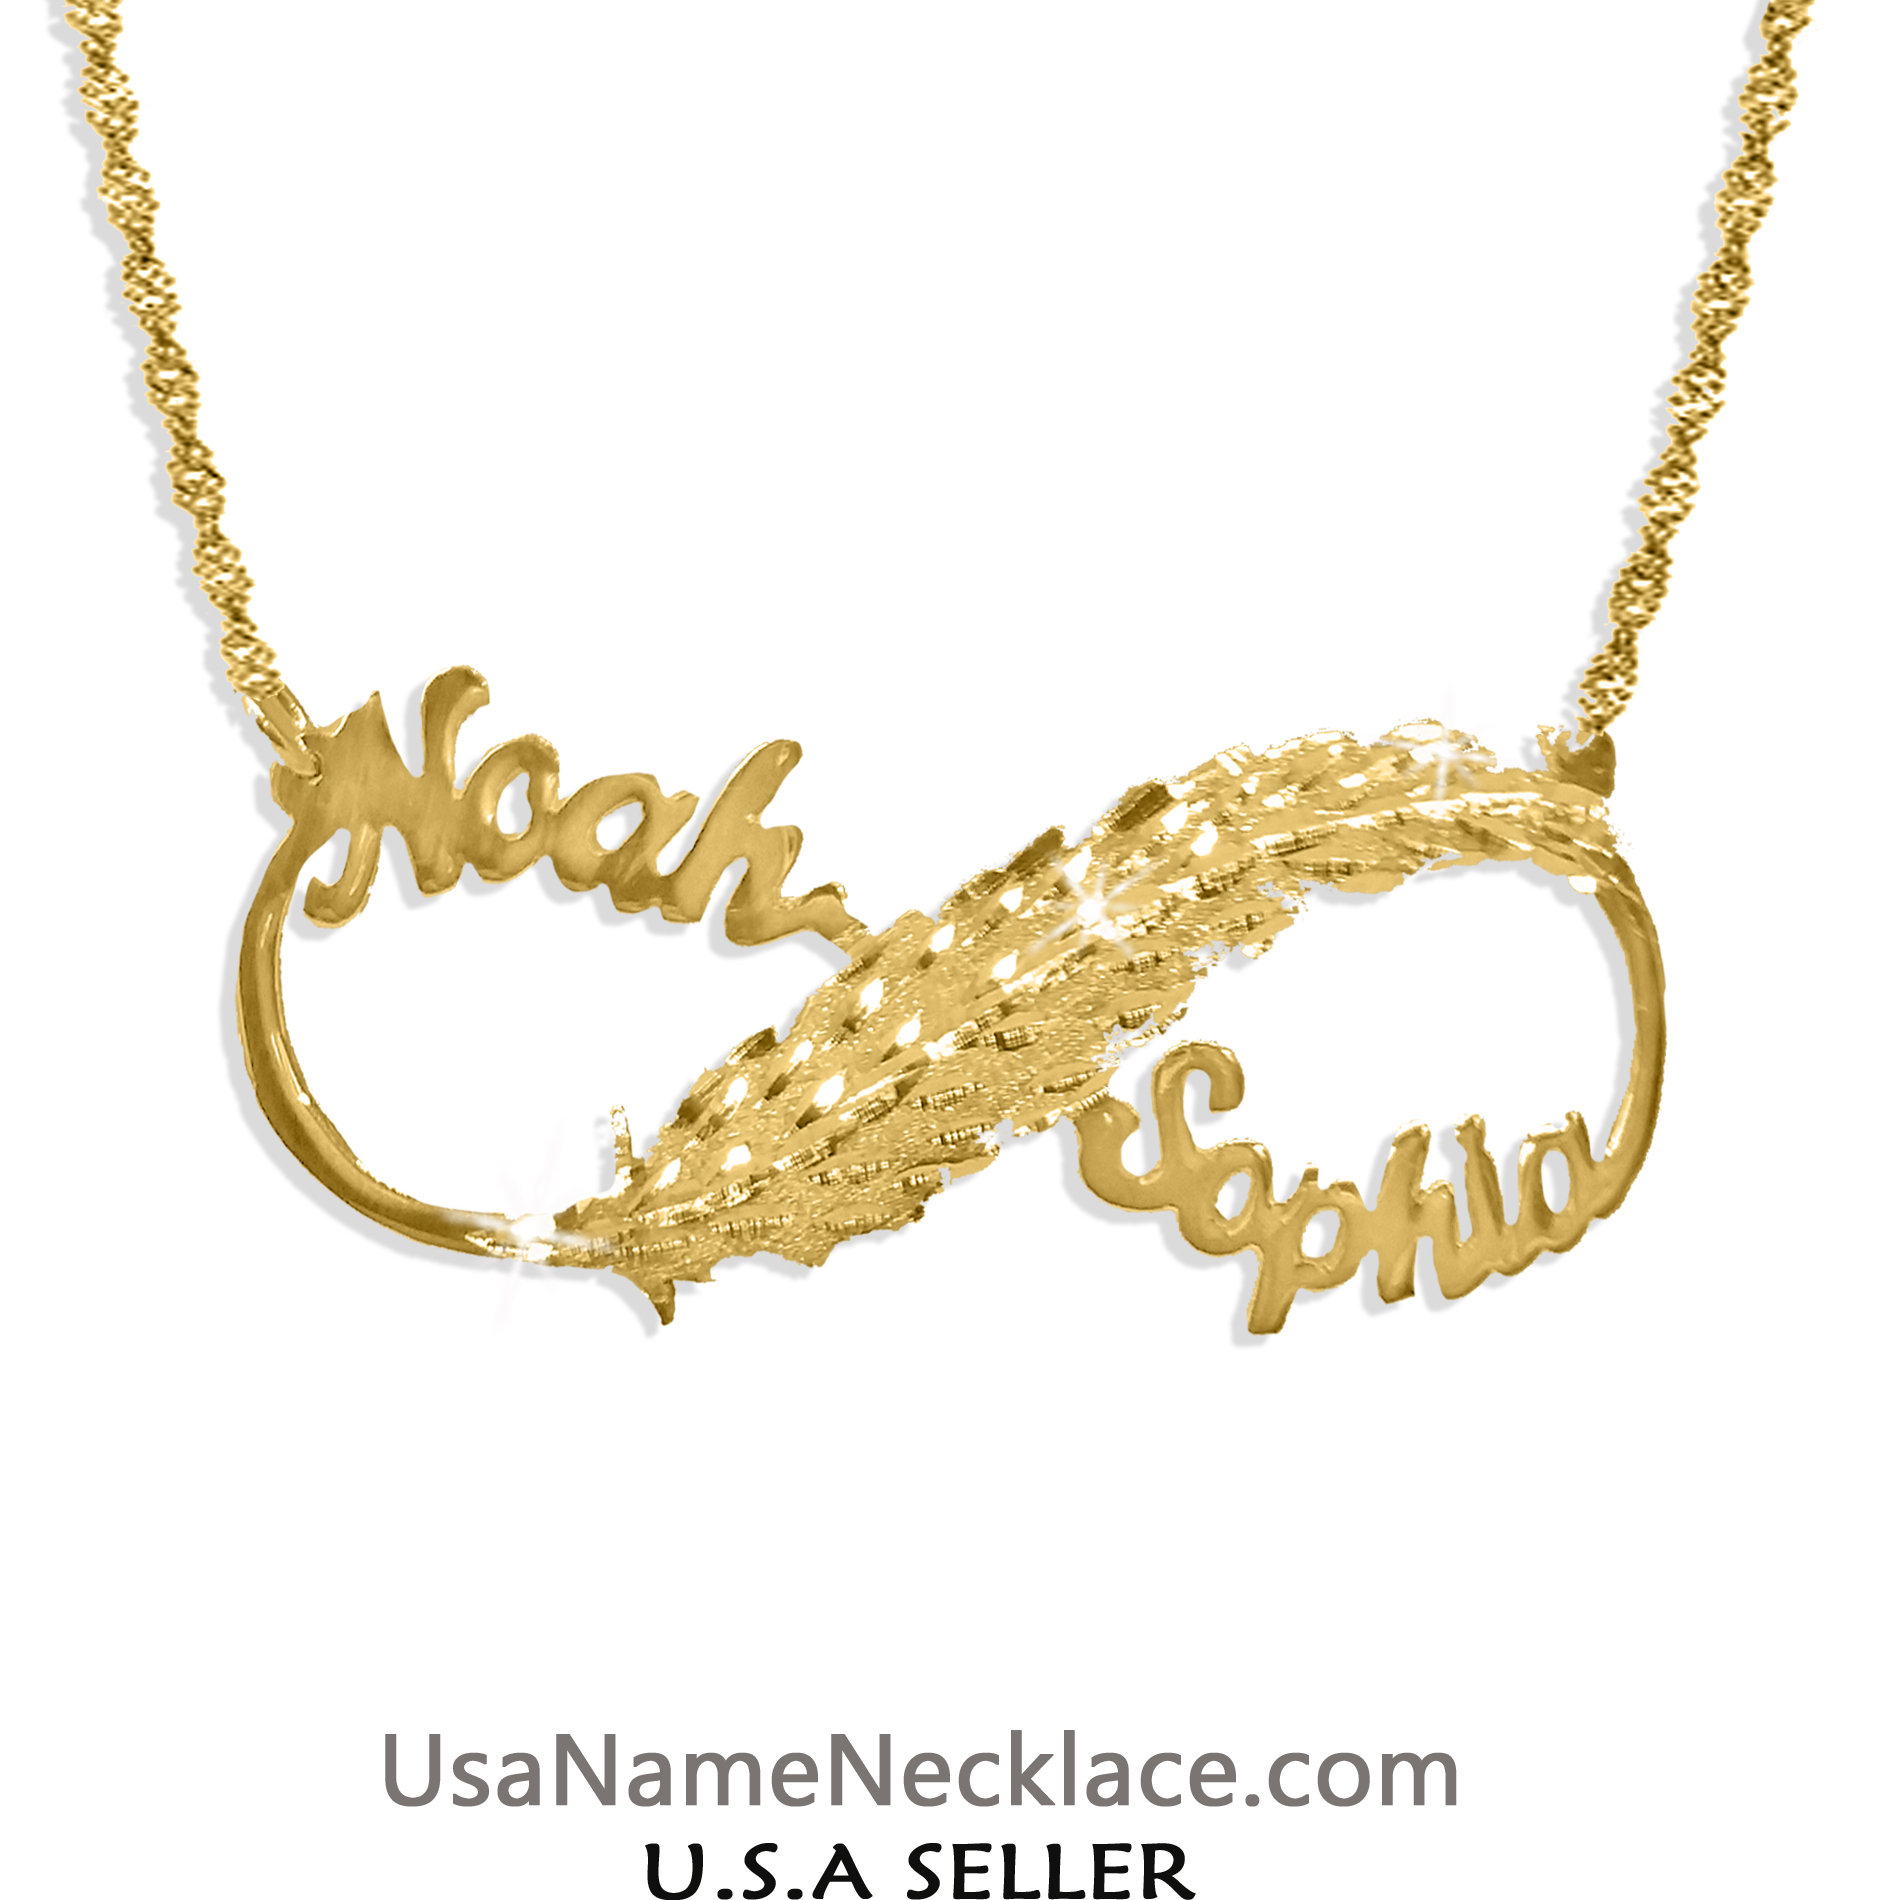 9bacae1154ee6 Personalized Infinity 2 Name Necklace 14K Gold-plated , Feather-Love  Infinity   usanamenecklace